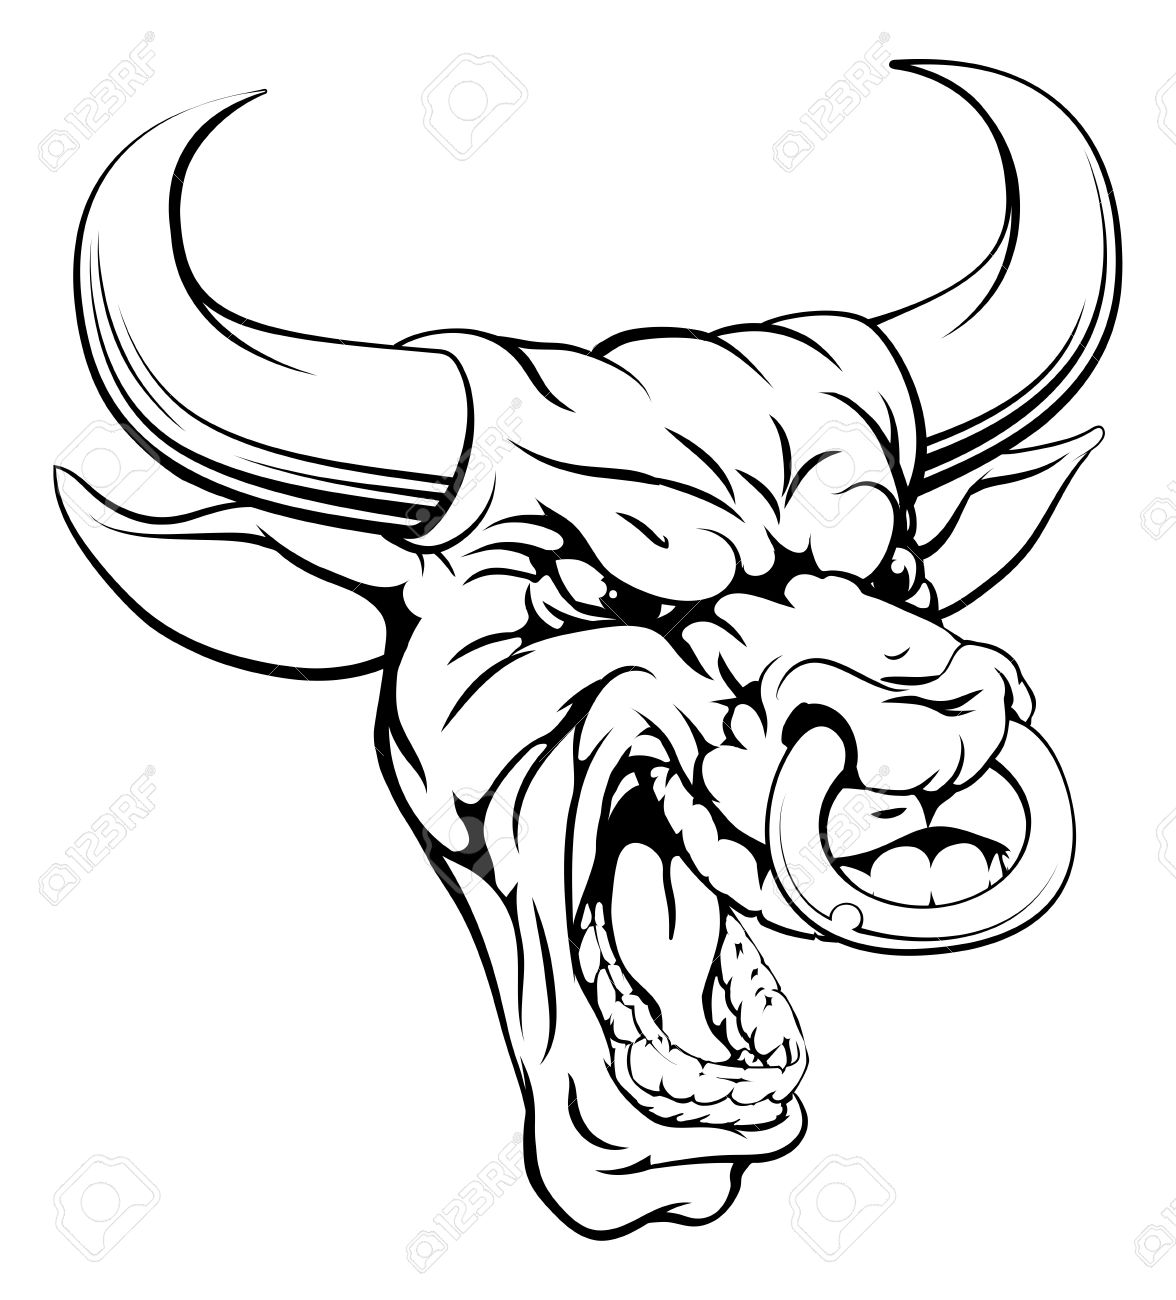 1176x1300 A Drawing Of A Mean Angry Looking Bull Mascot Face Royalty Free